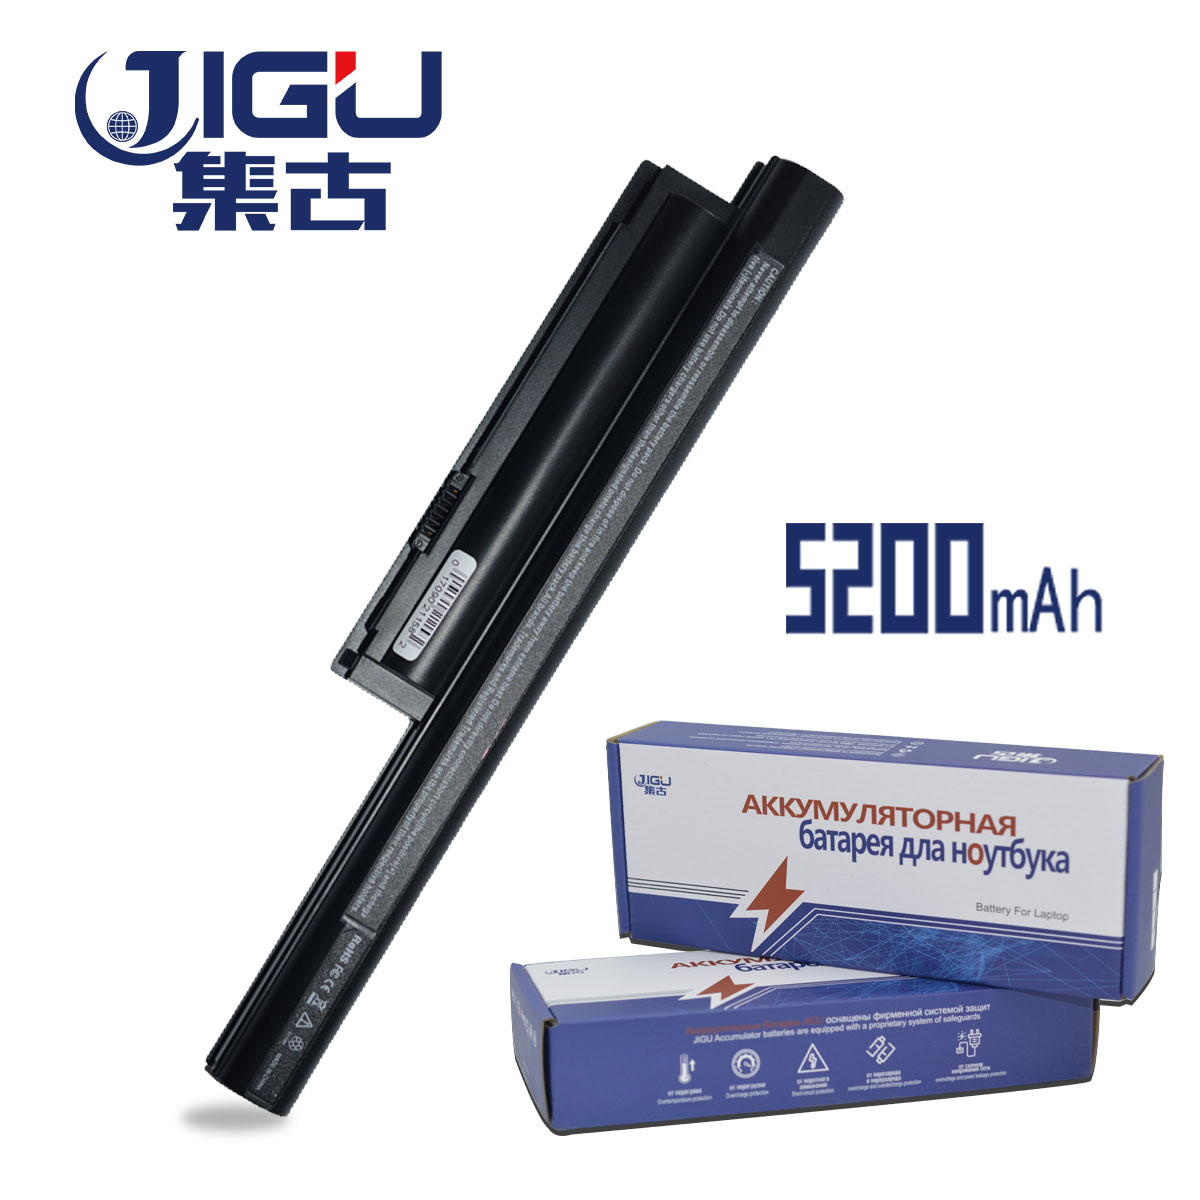 JIGU Laptop Battery For Sony Vaio bps26 VGP-BPL26 VGP-BPS26 VGP-BPS26A SVE14A SVE15 SVE17 VPC-CA VPC-CB VPC-EG VPC-EH azerty for sony vaio vpc cb vpccb series 148954941 clavier french keyboard